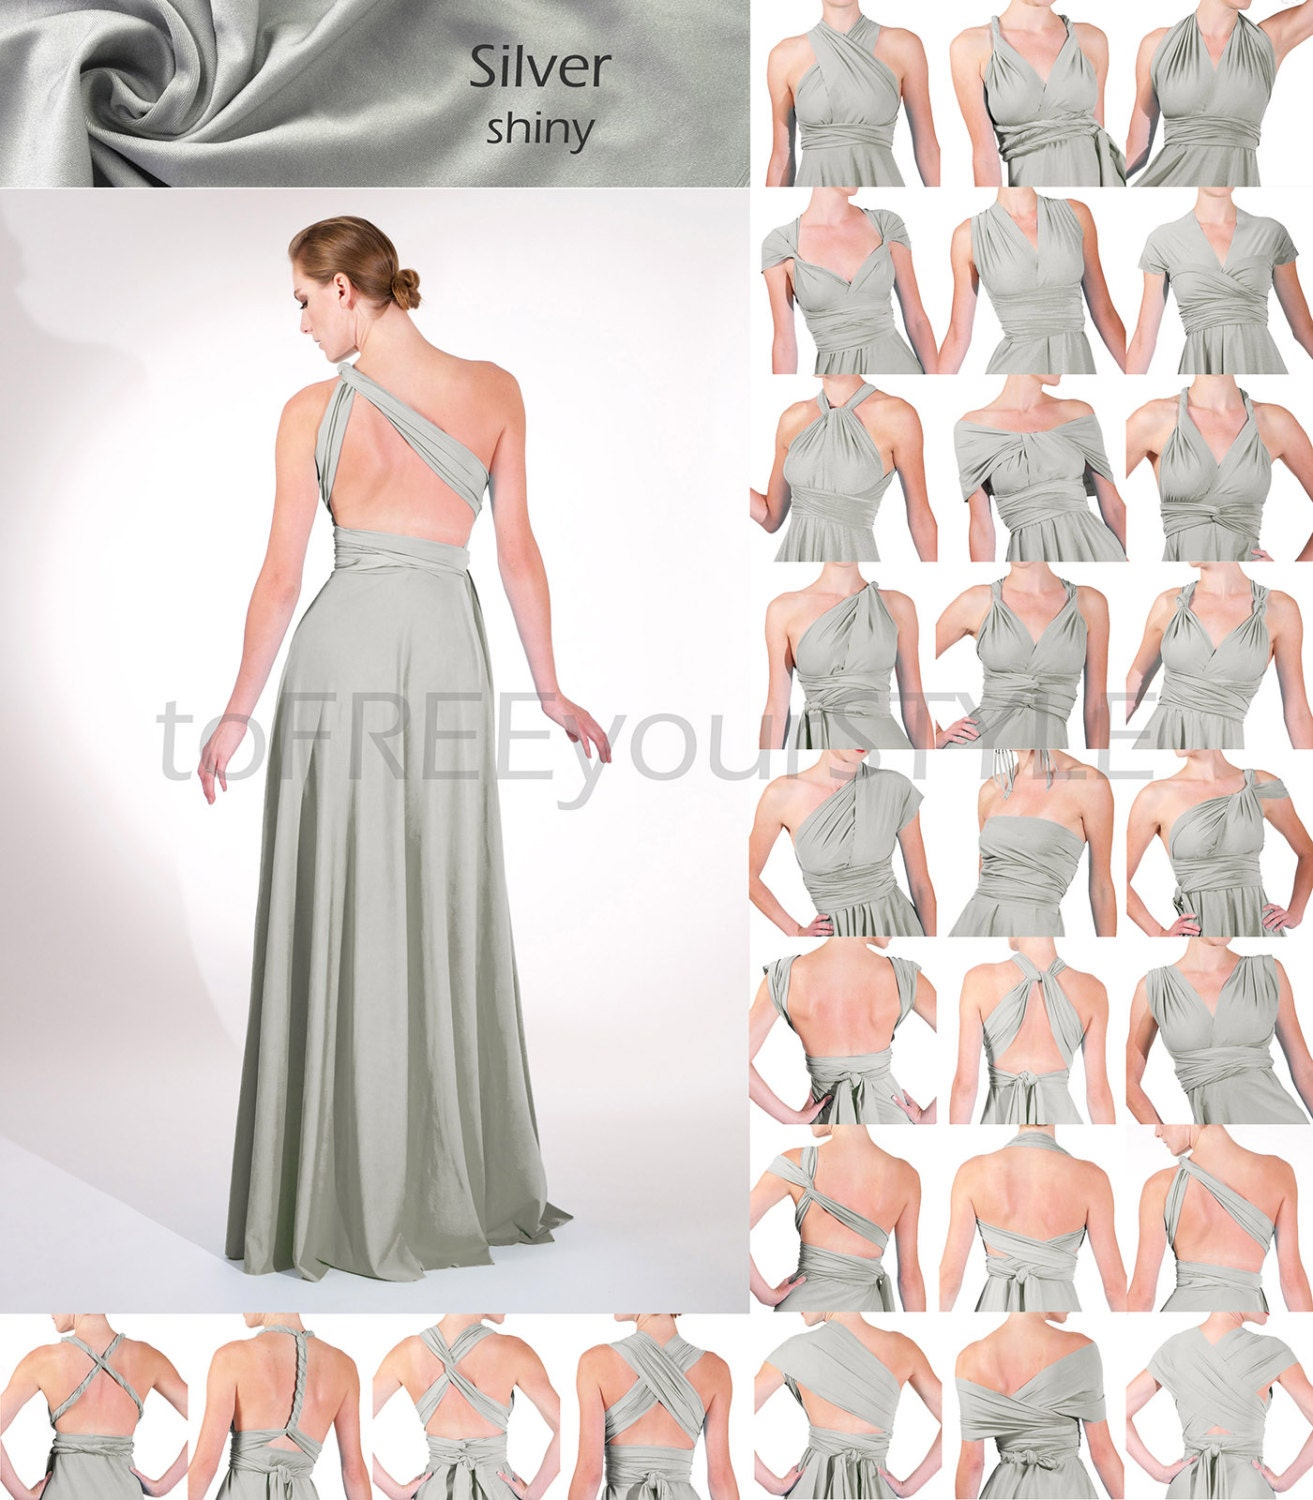 Long infinity dress in silver shiny full free style dress zoom ombrellifo Image collections